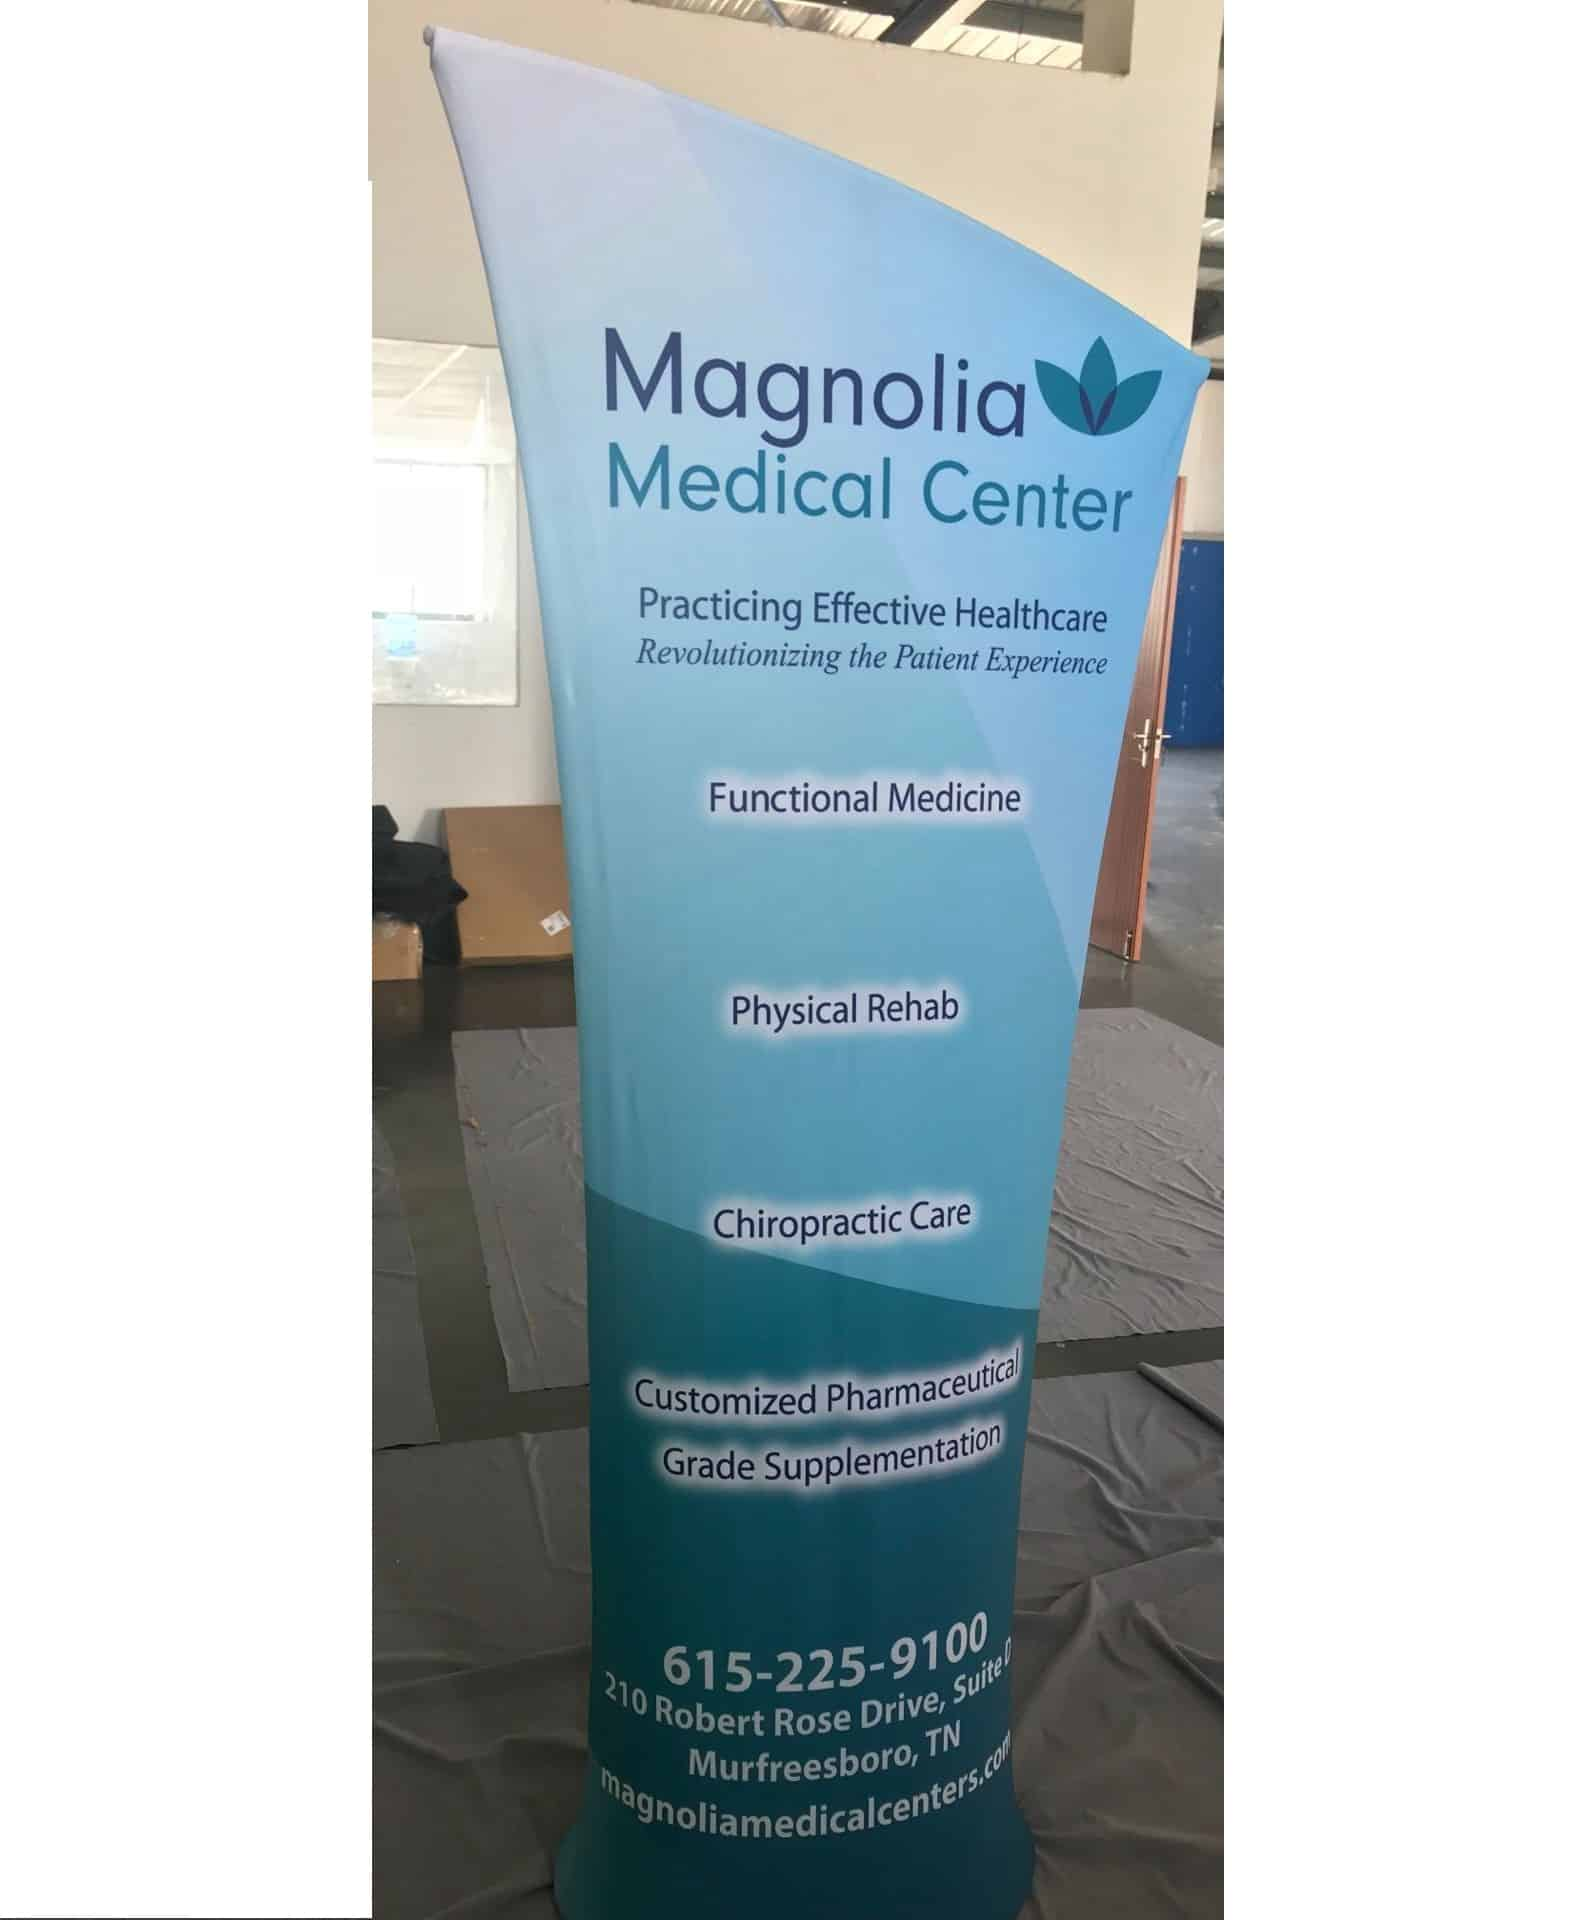 Magnolia Medical Center